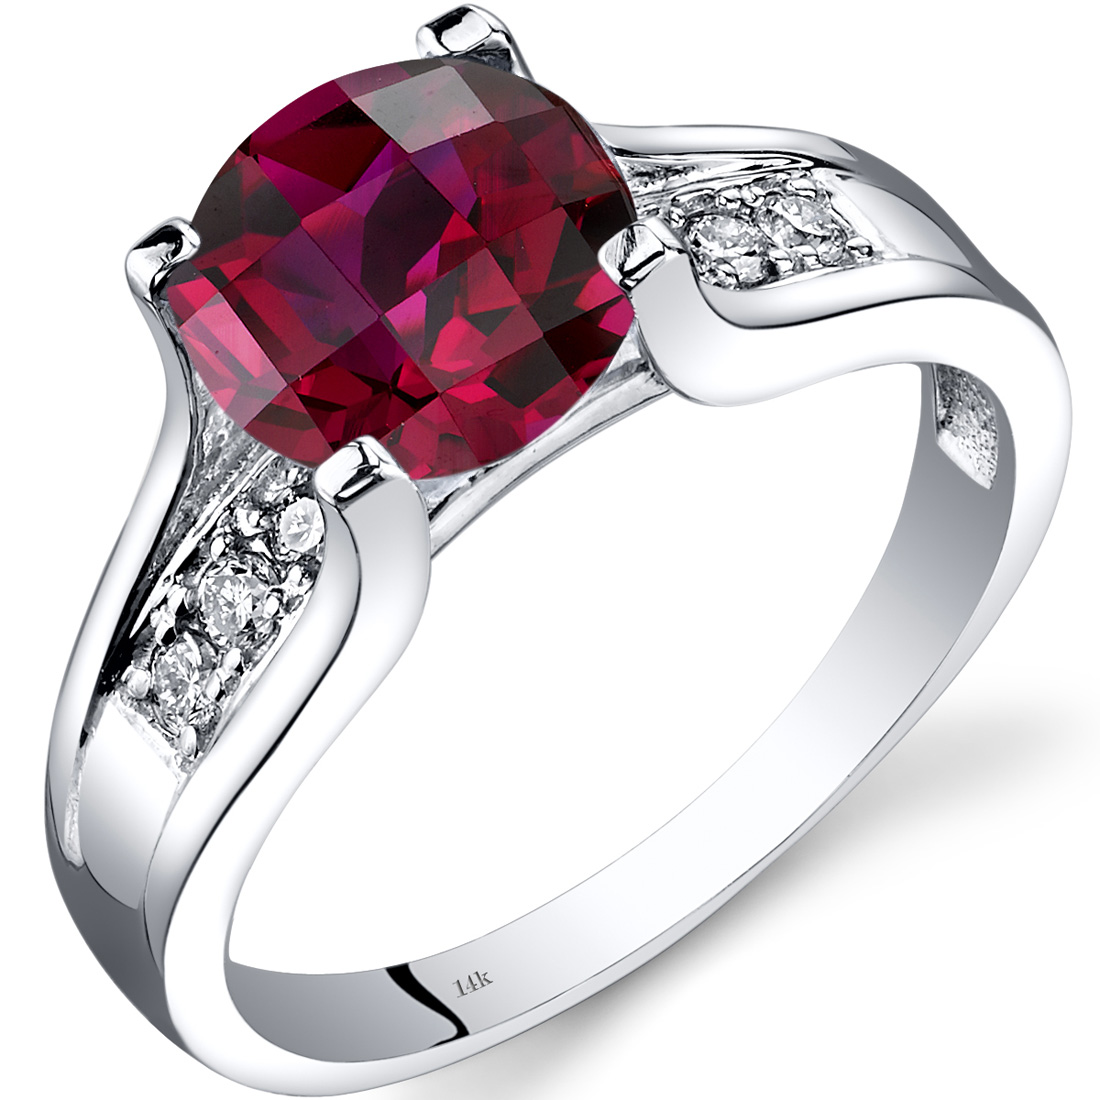 Peora 2.5 Carat T.G.W. Round-Cut Created Ruby and Diamond Accent 14kt White Gold Ring Size 7